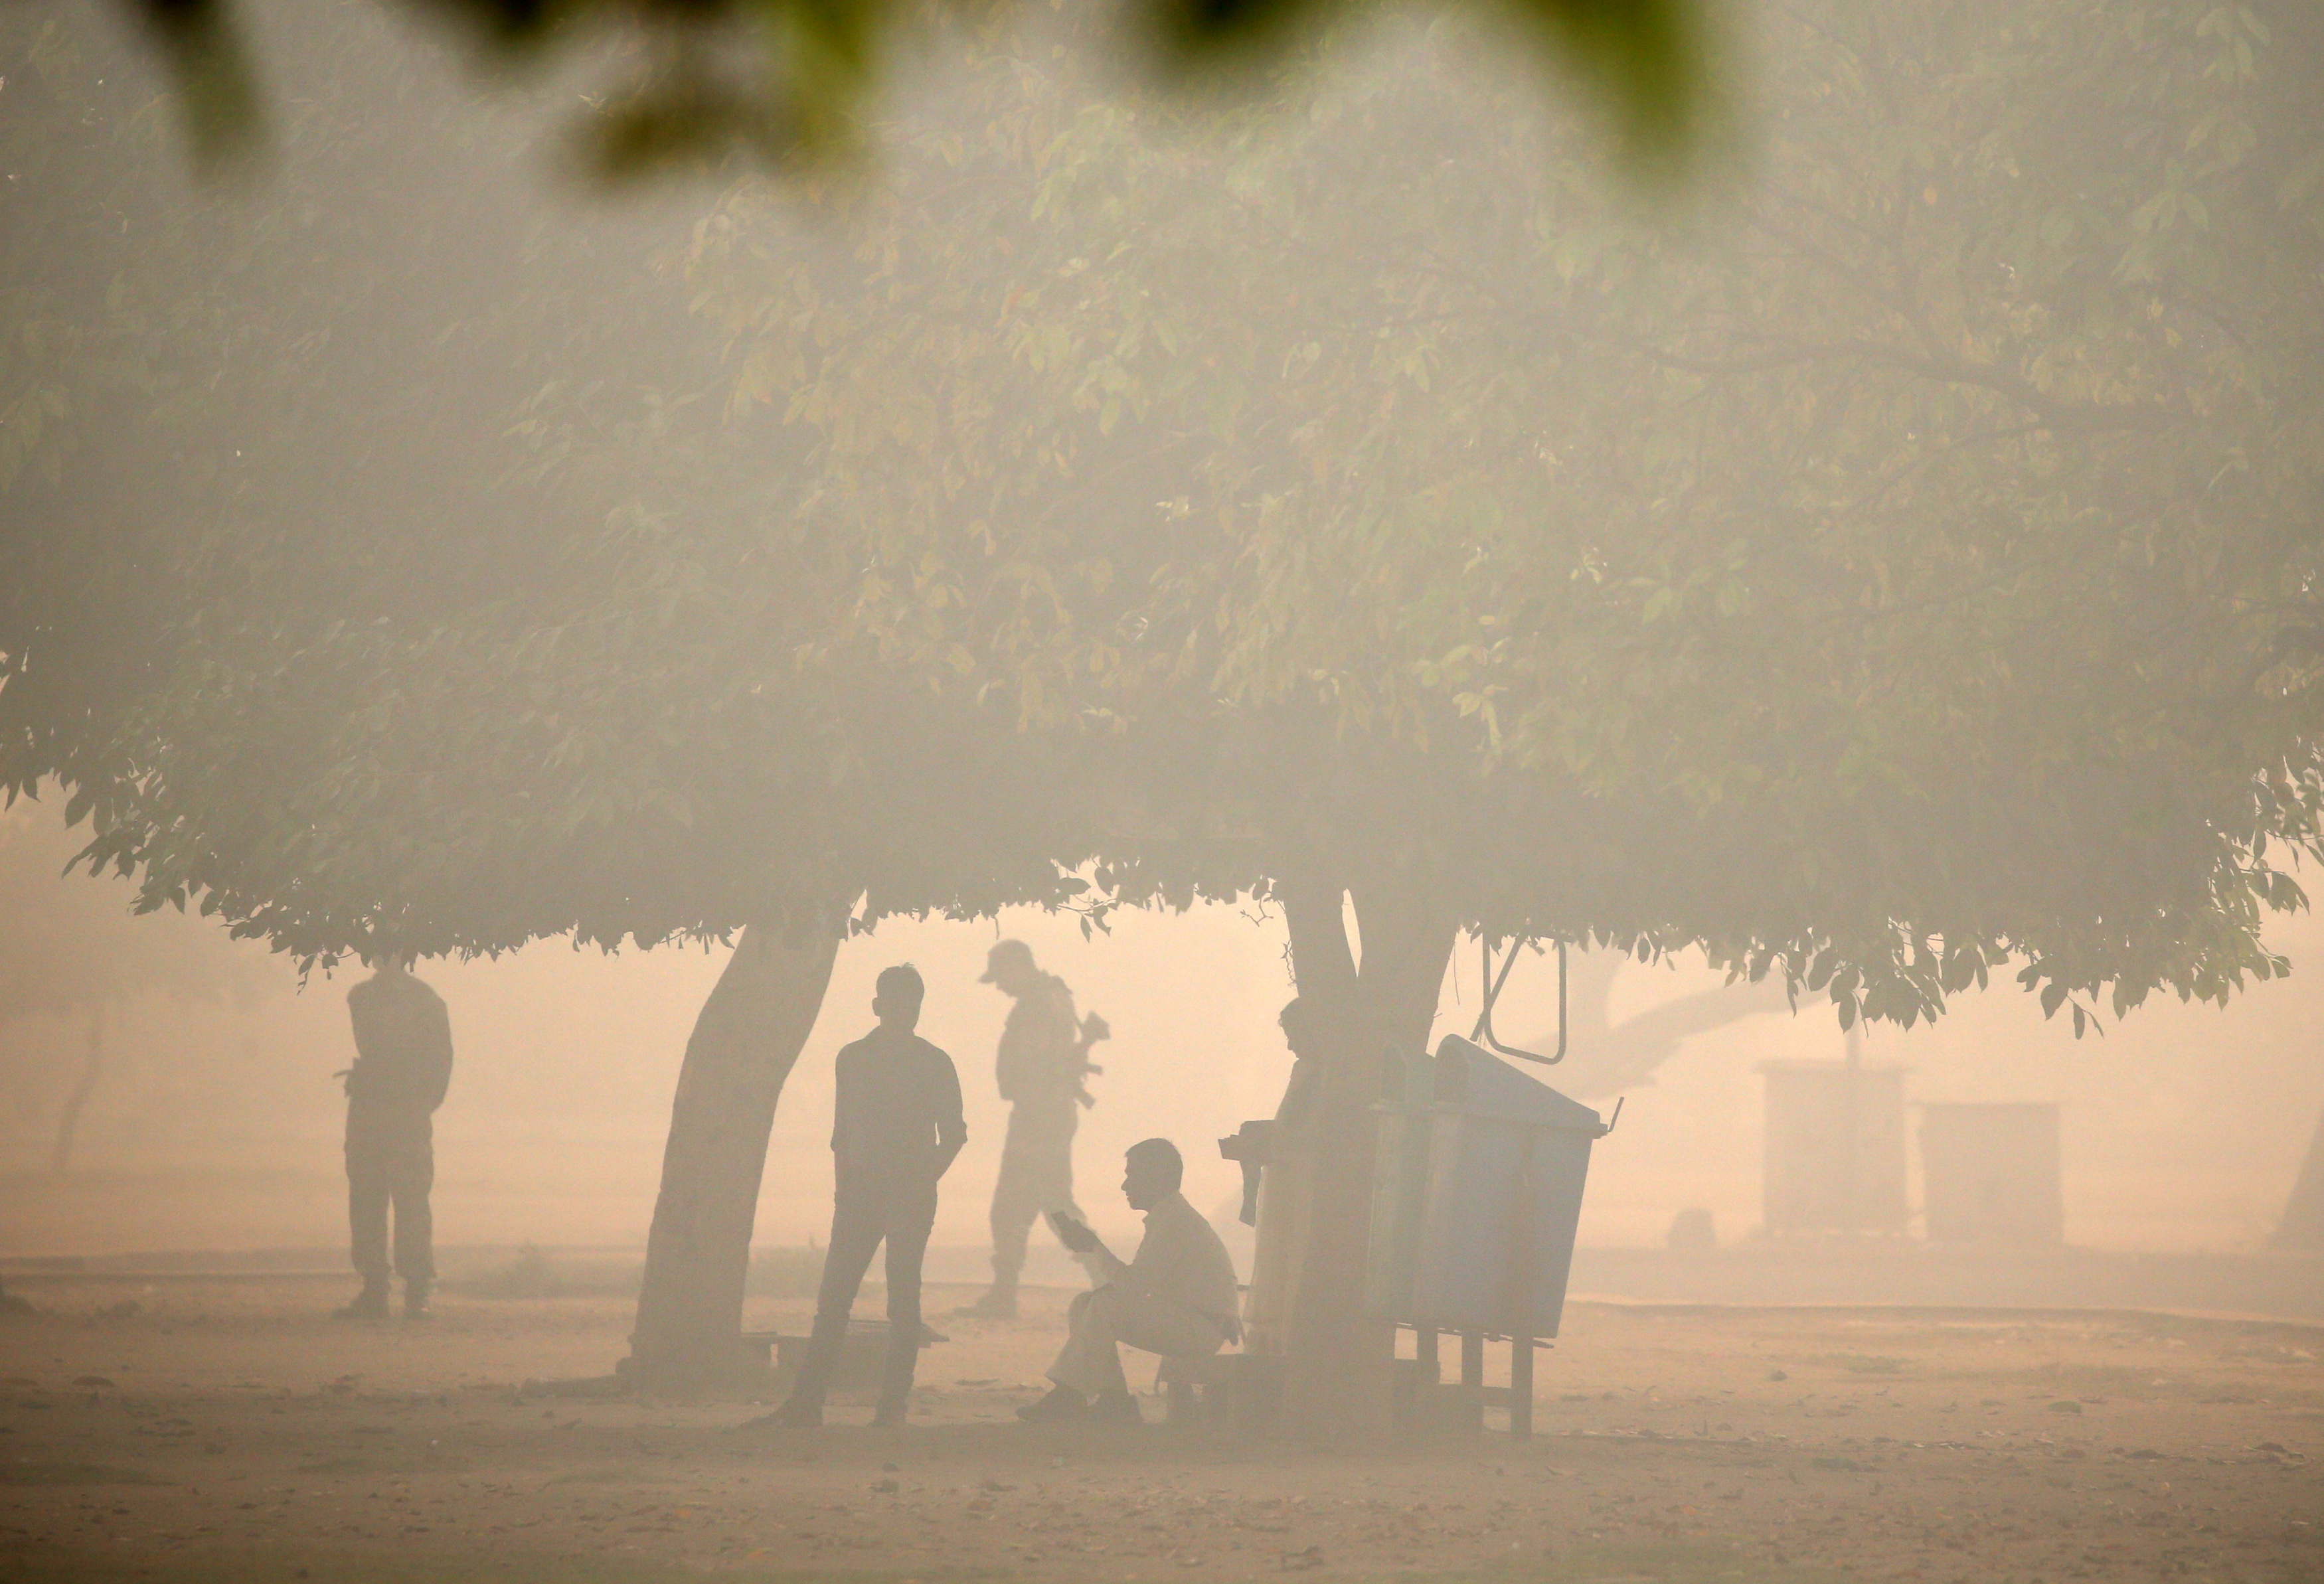 Policemen are seen in a public park on a smoggy morning in New Delhi, India, October 31, 2016. REUTERS/Cathal McNaughton - RTX2R4ND